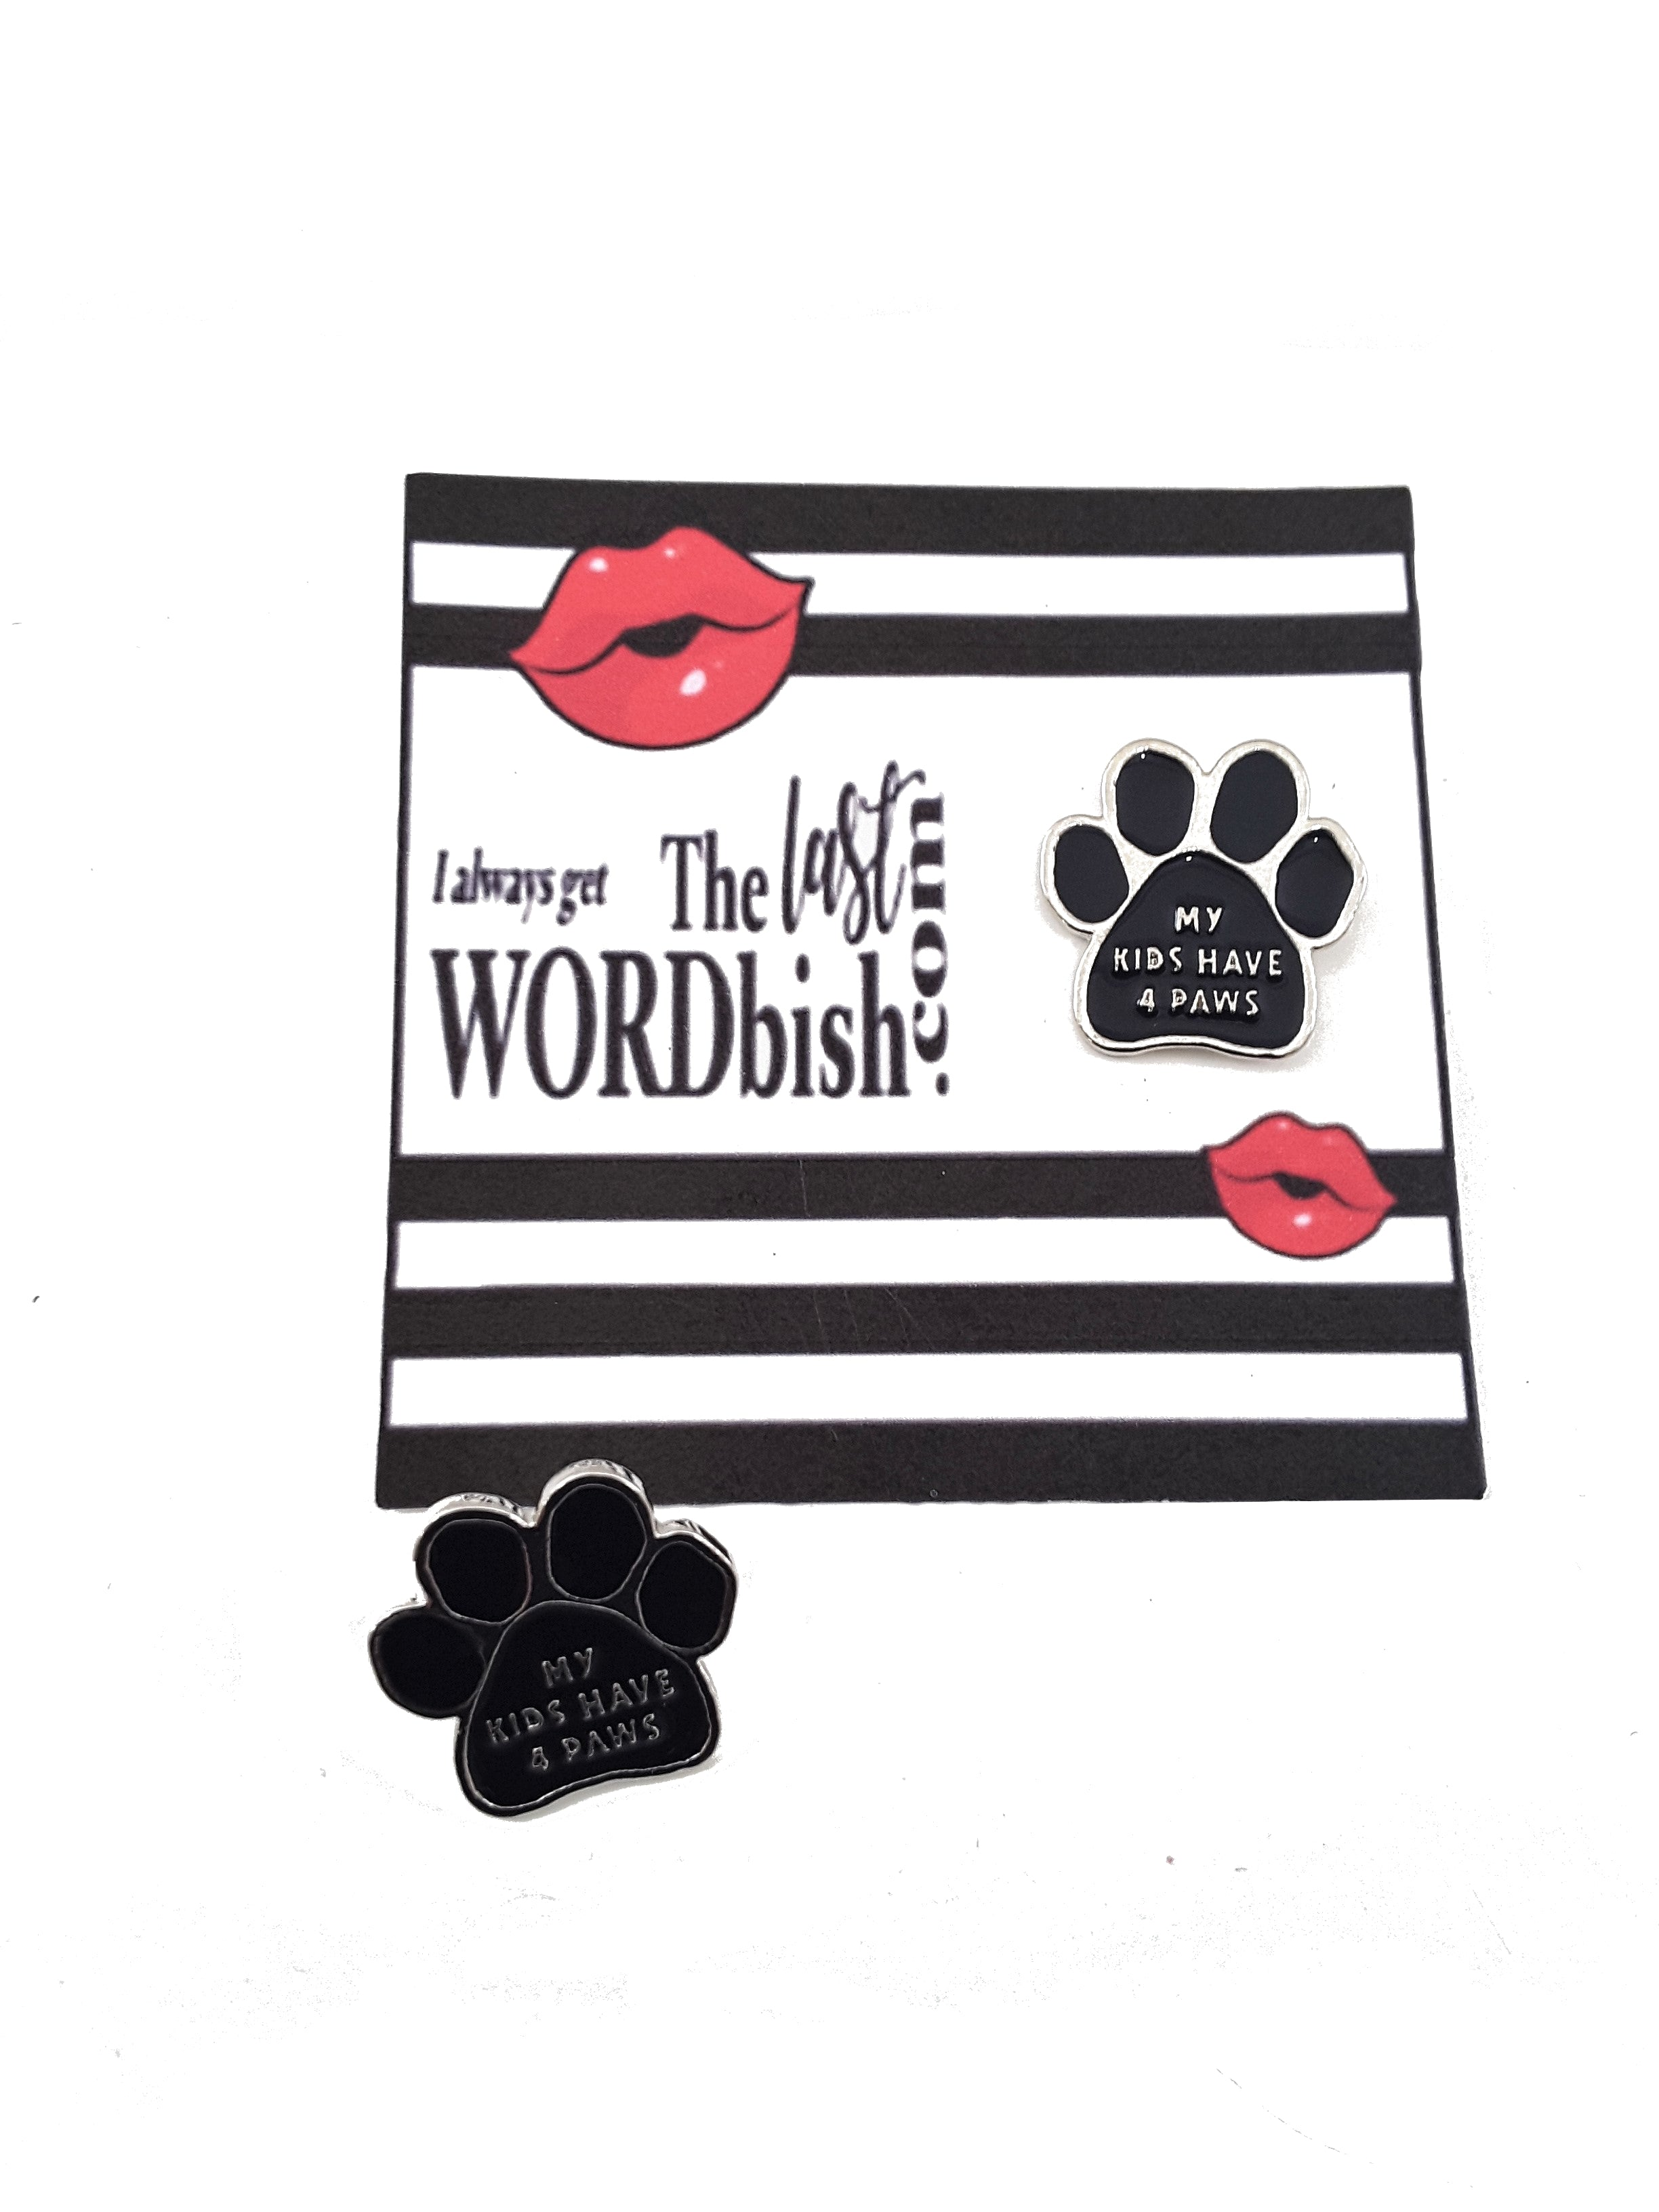 My Kids Have 4 Paws Enamel Pin - Free Shipping! - TheLastWordBish.com